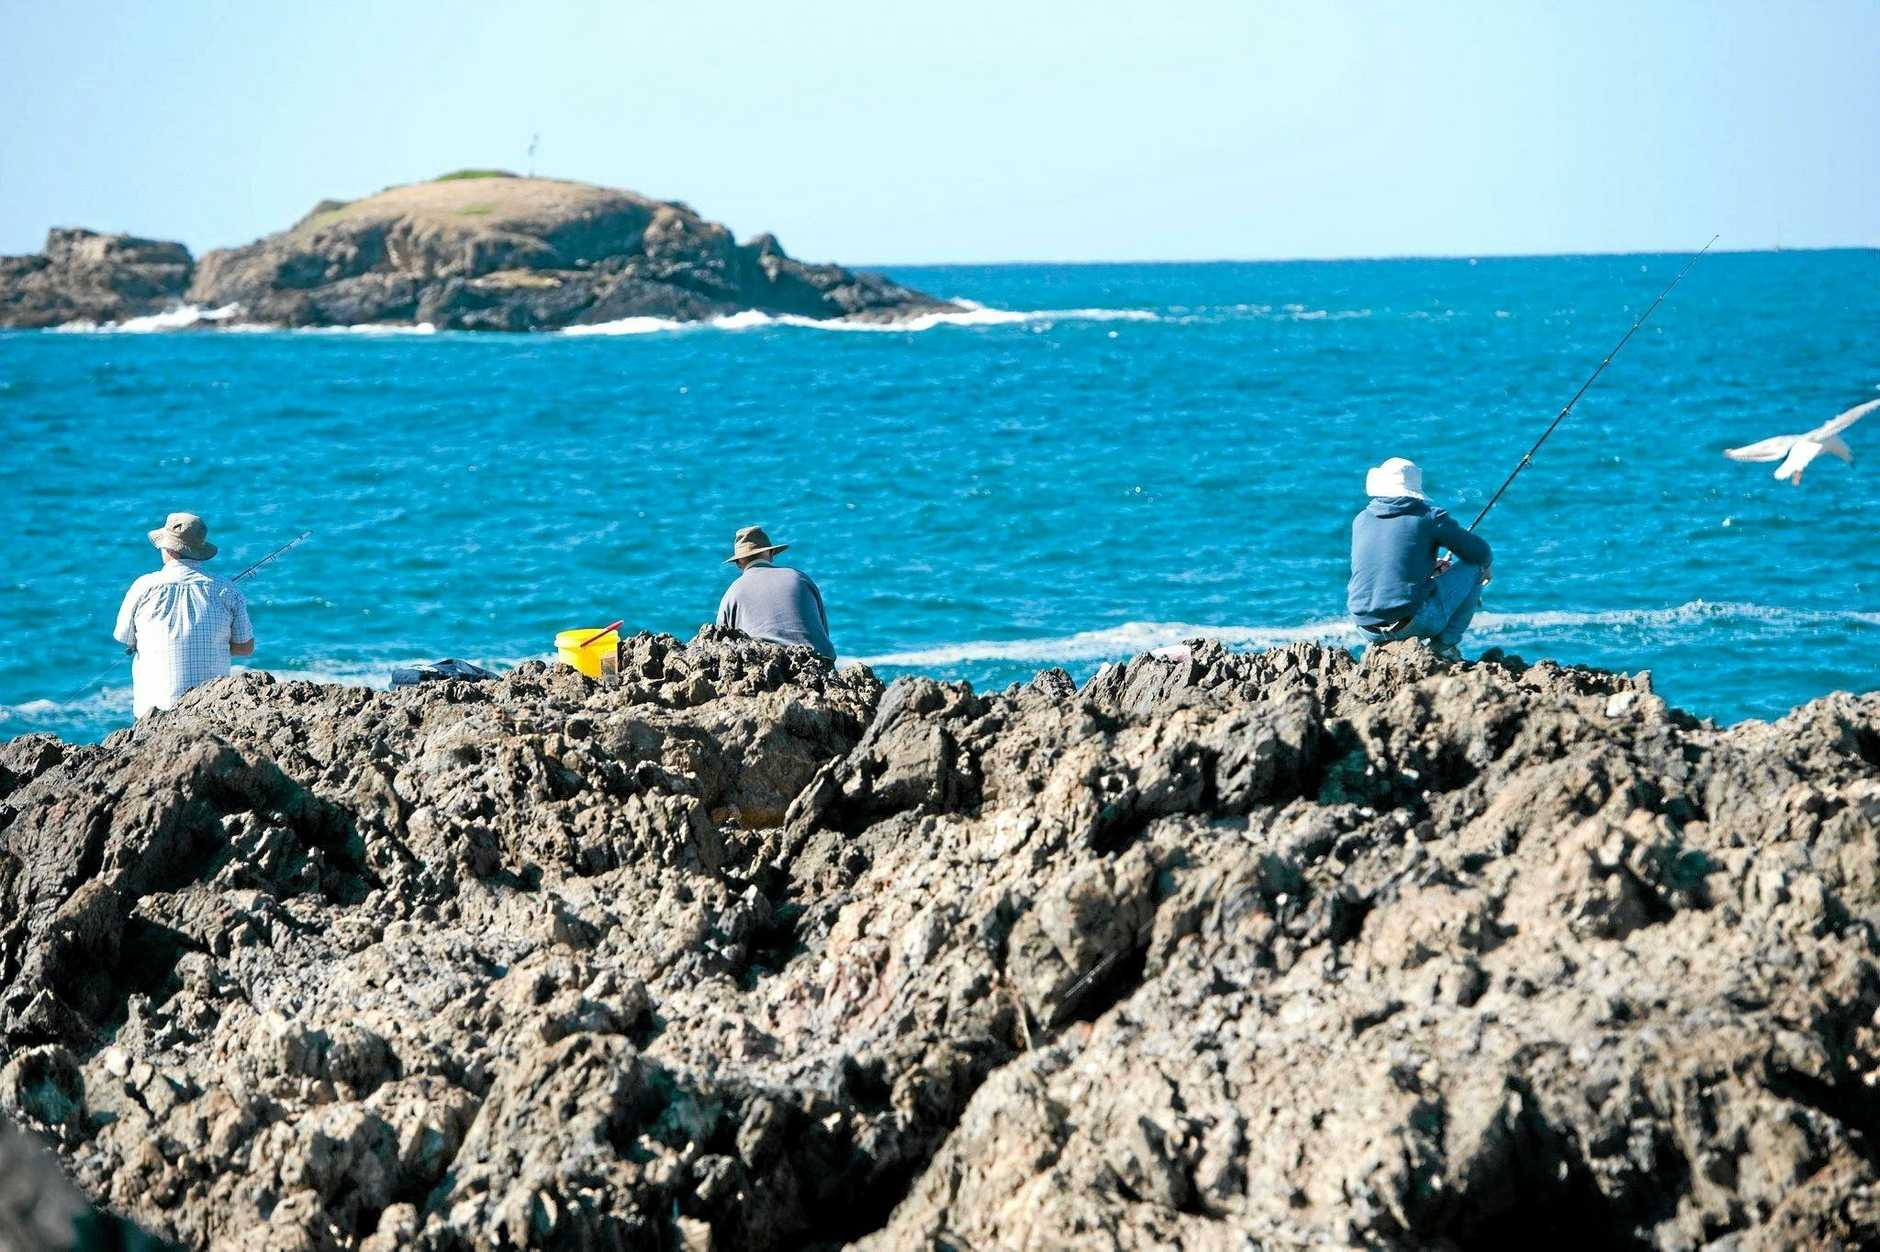 Rock fishing remains a popular pastime. Life jackets are not so popular.